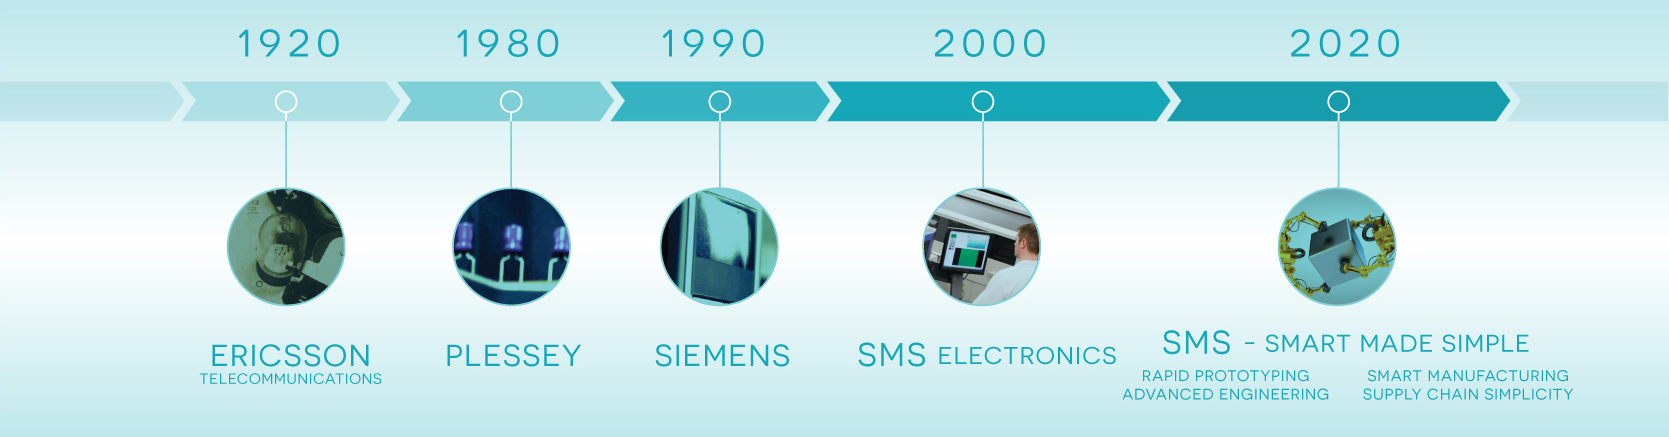 the sms timeline